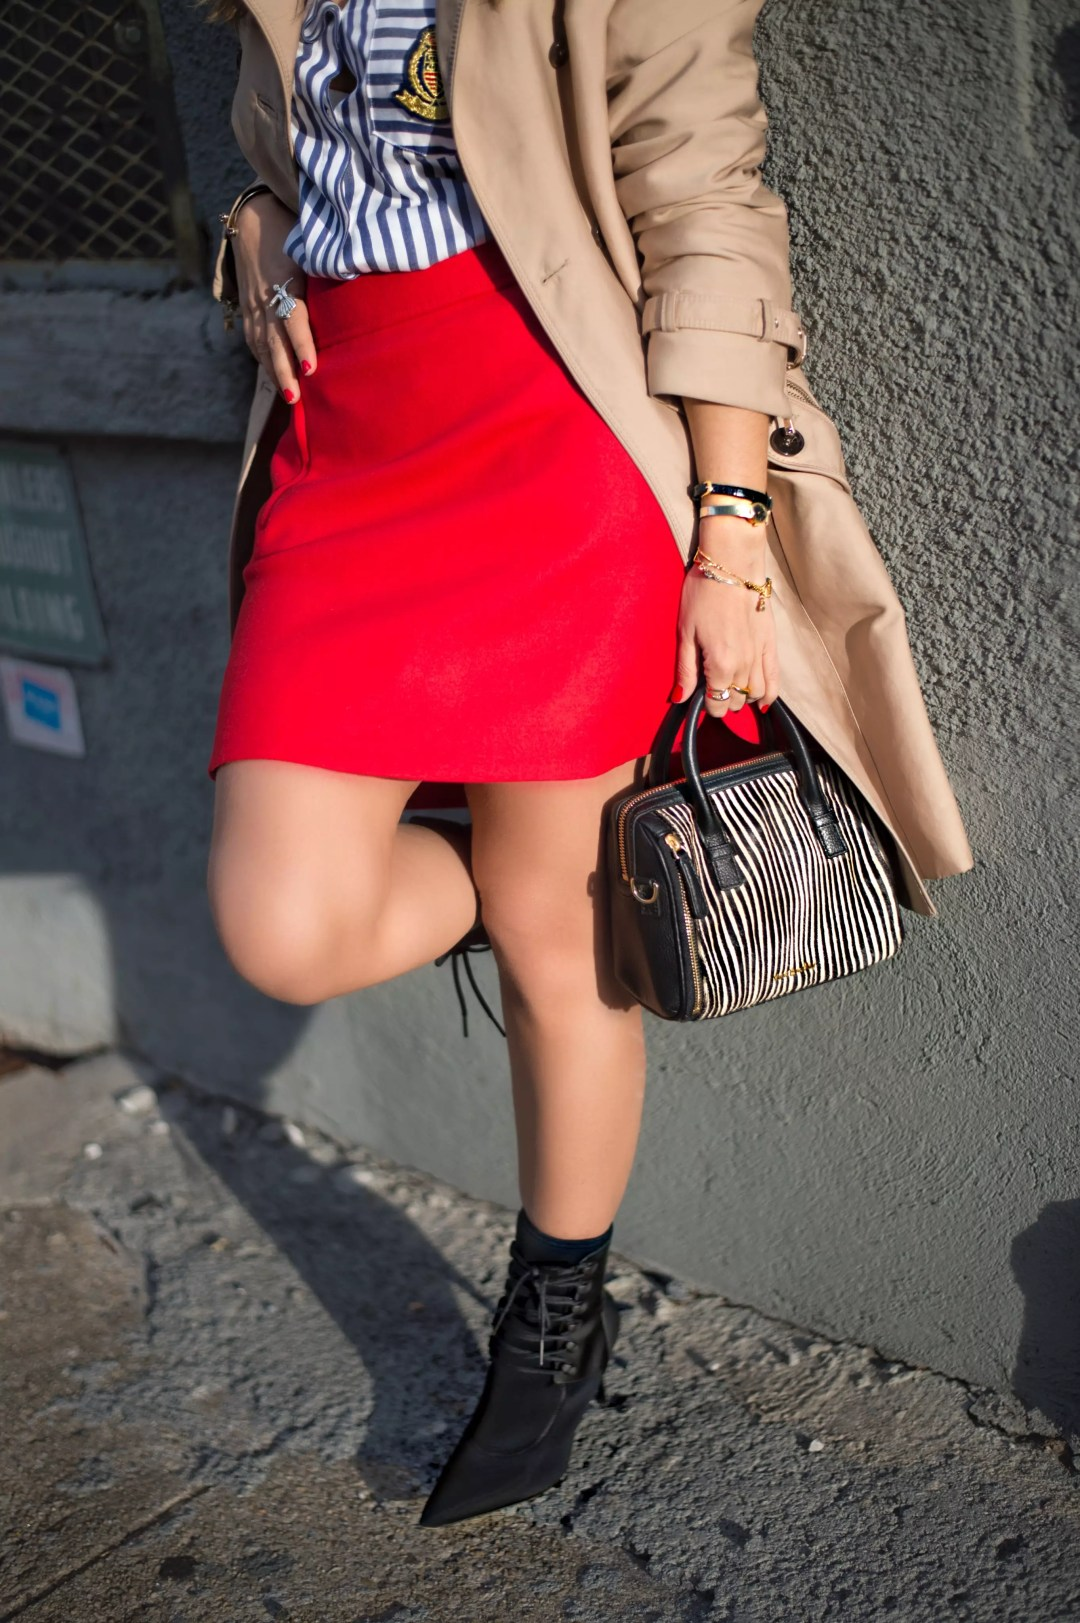 j-crew-a-line-red-skirt-socks-booties-trech-coat-stripe-shirts-street-style-alley-girl-6